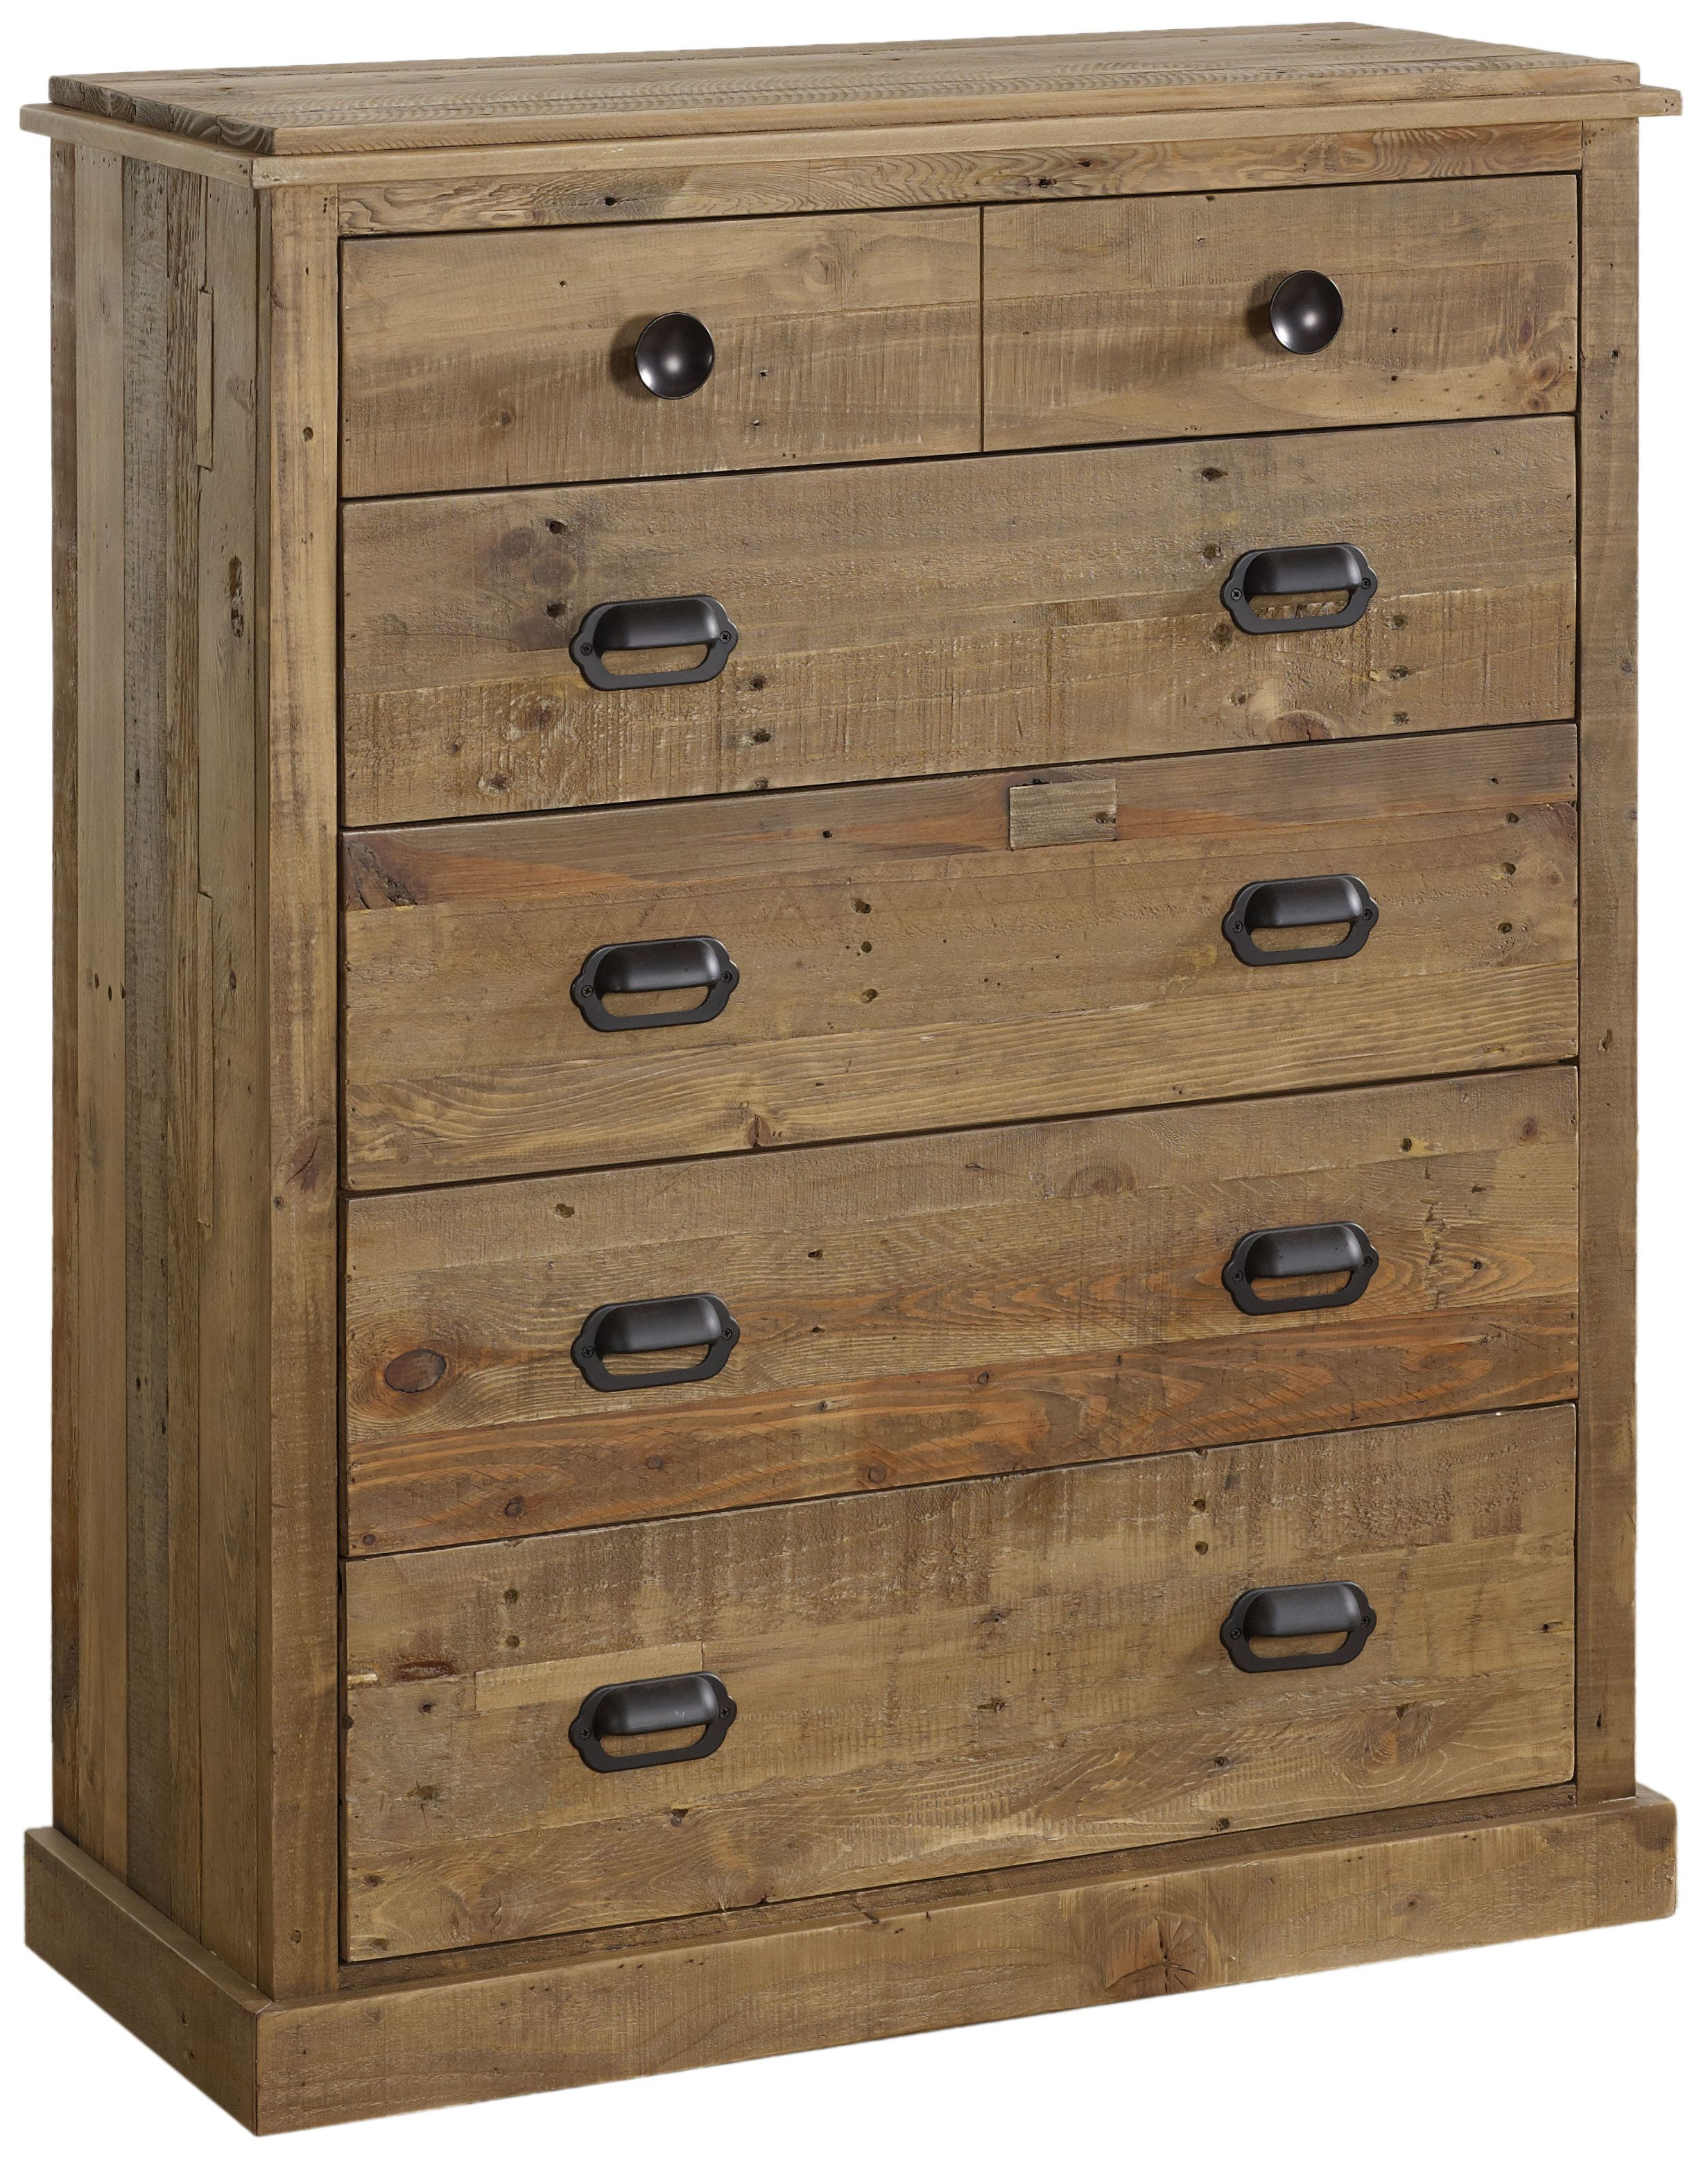 Love this rustic Nobu range available from Big Save Furniture www